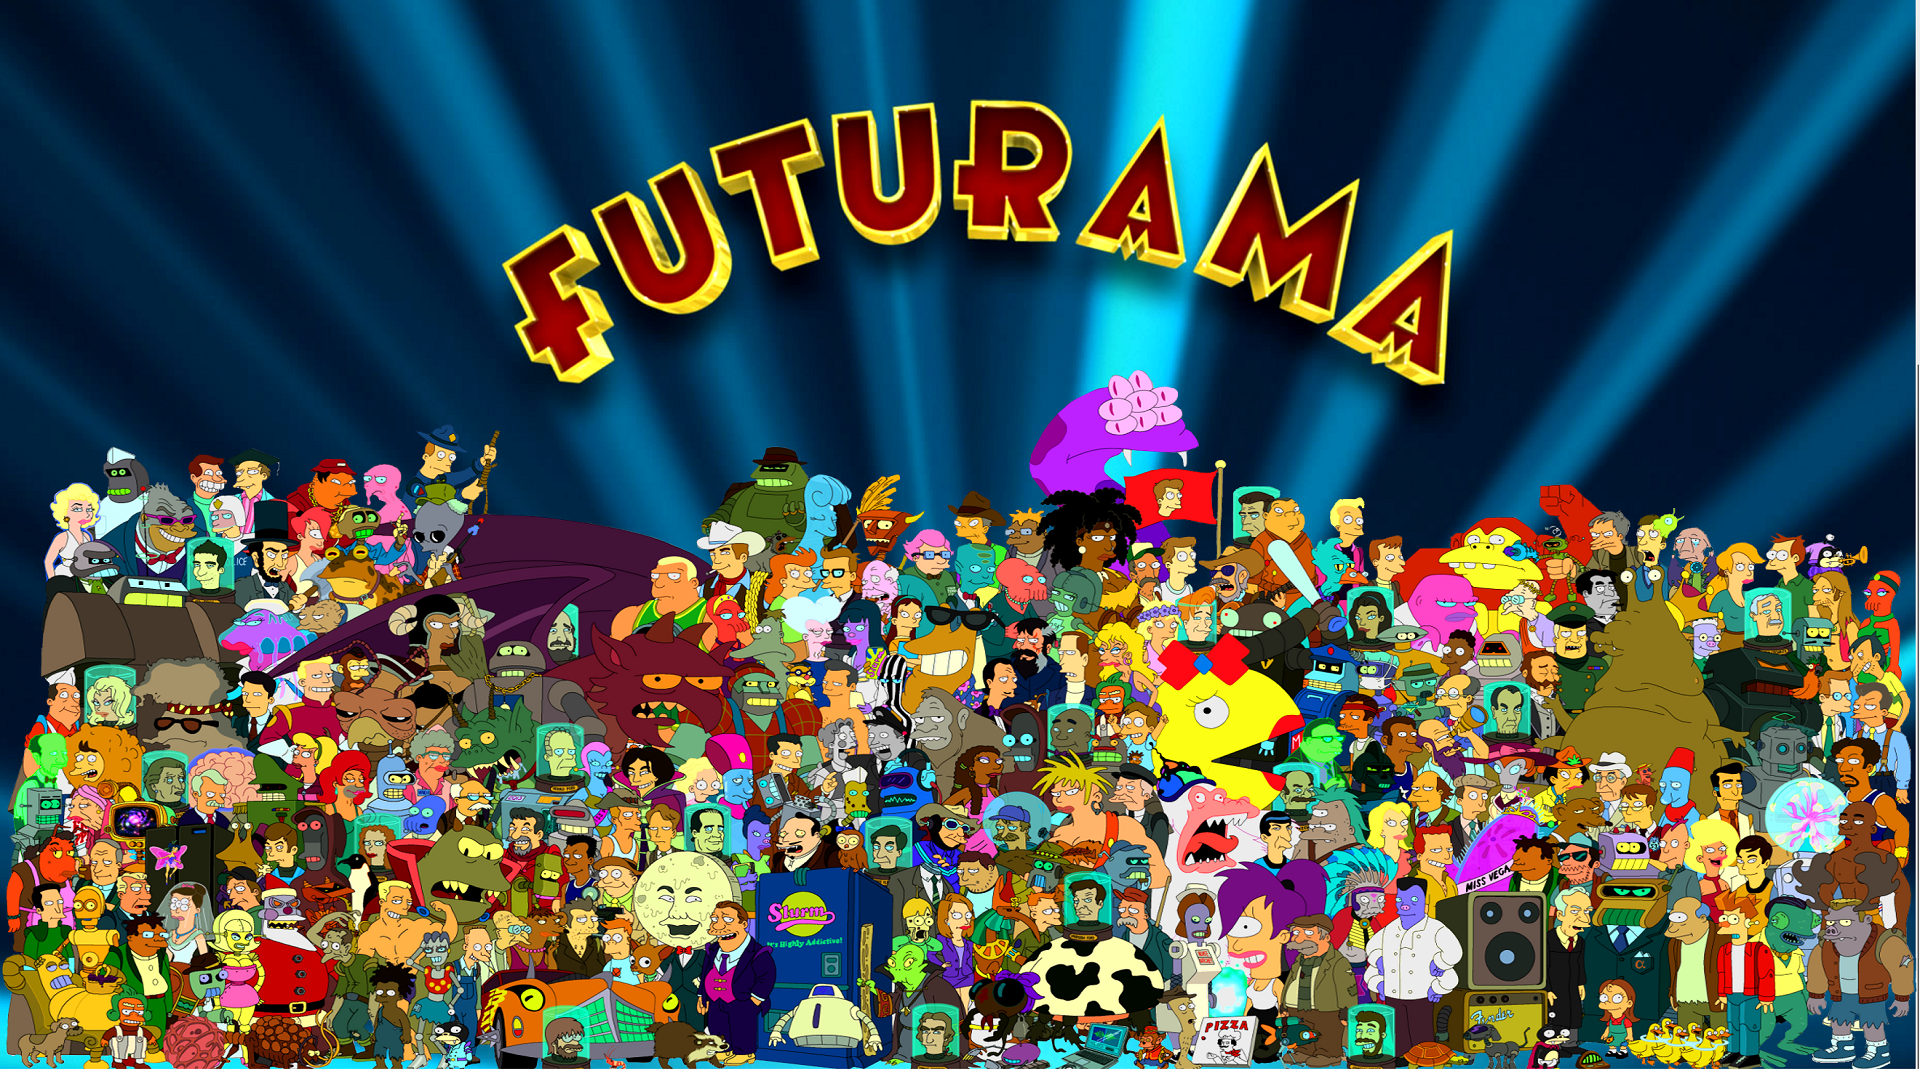 Futurama Desktop Wallpaper